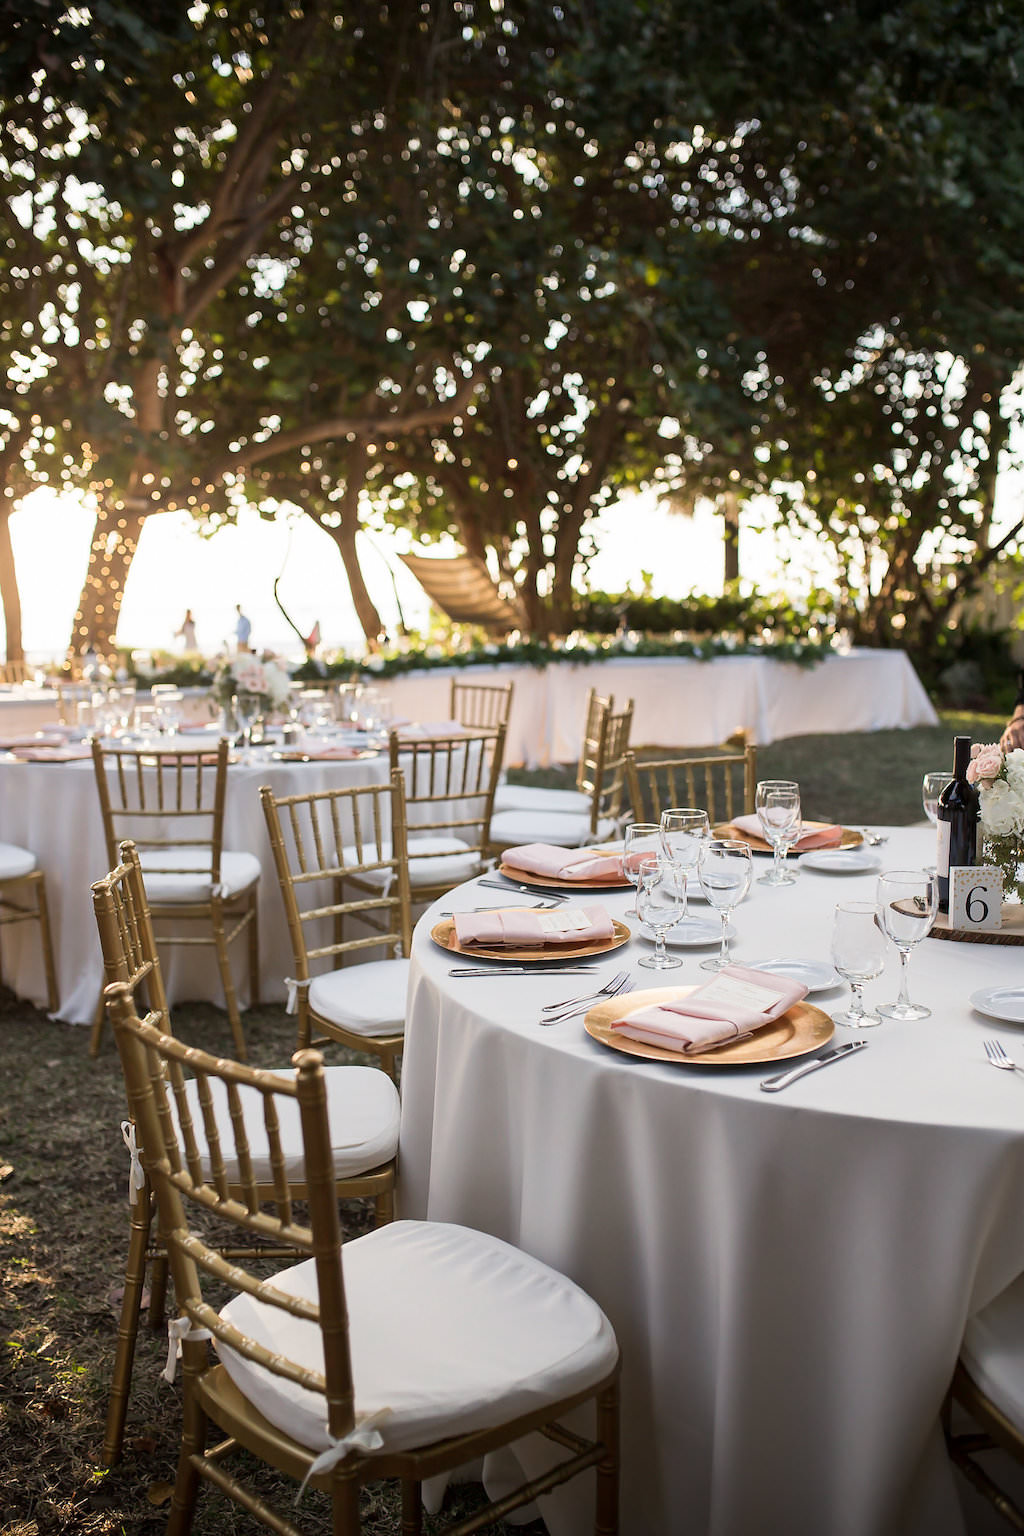 Round Reception Tables with Grey Linens Gold Chiavari Chairs Gold Chargers with Pink Napkins and Menus